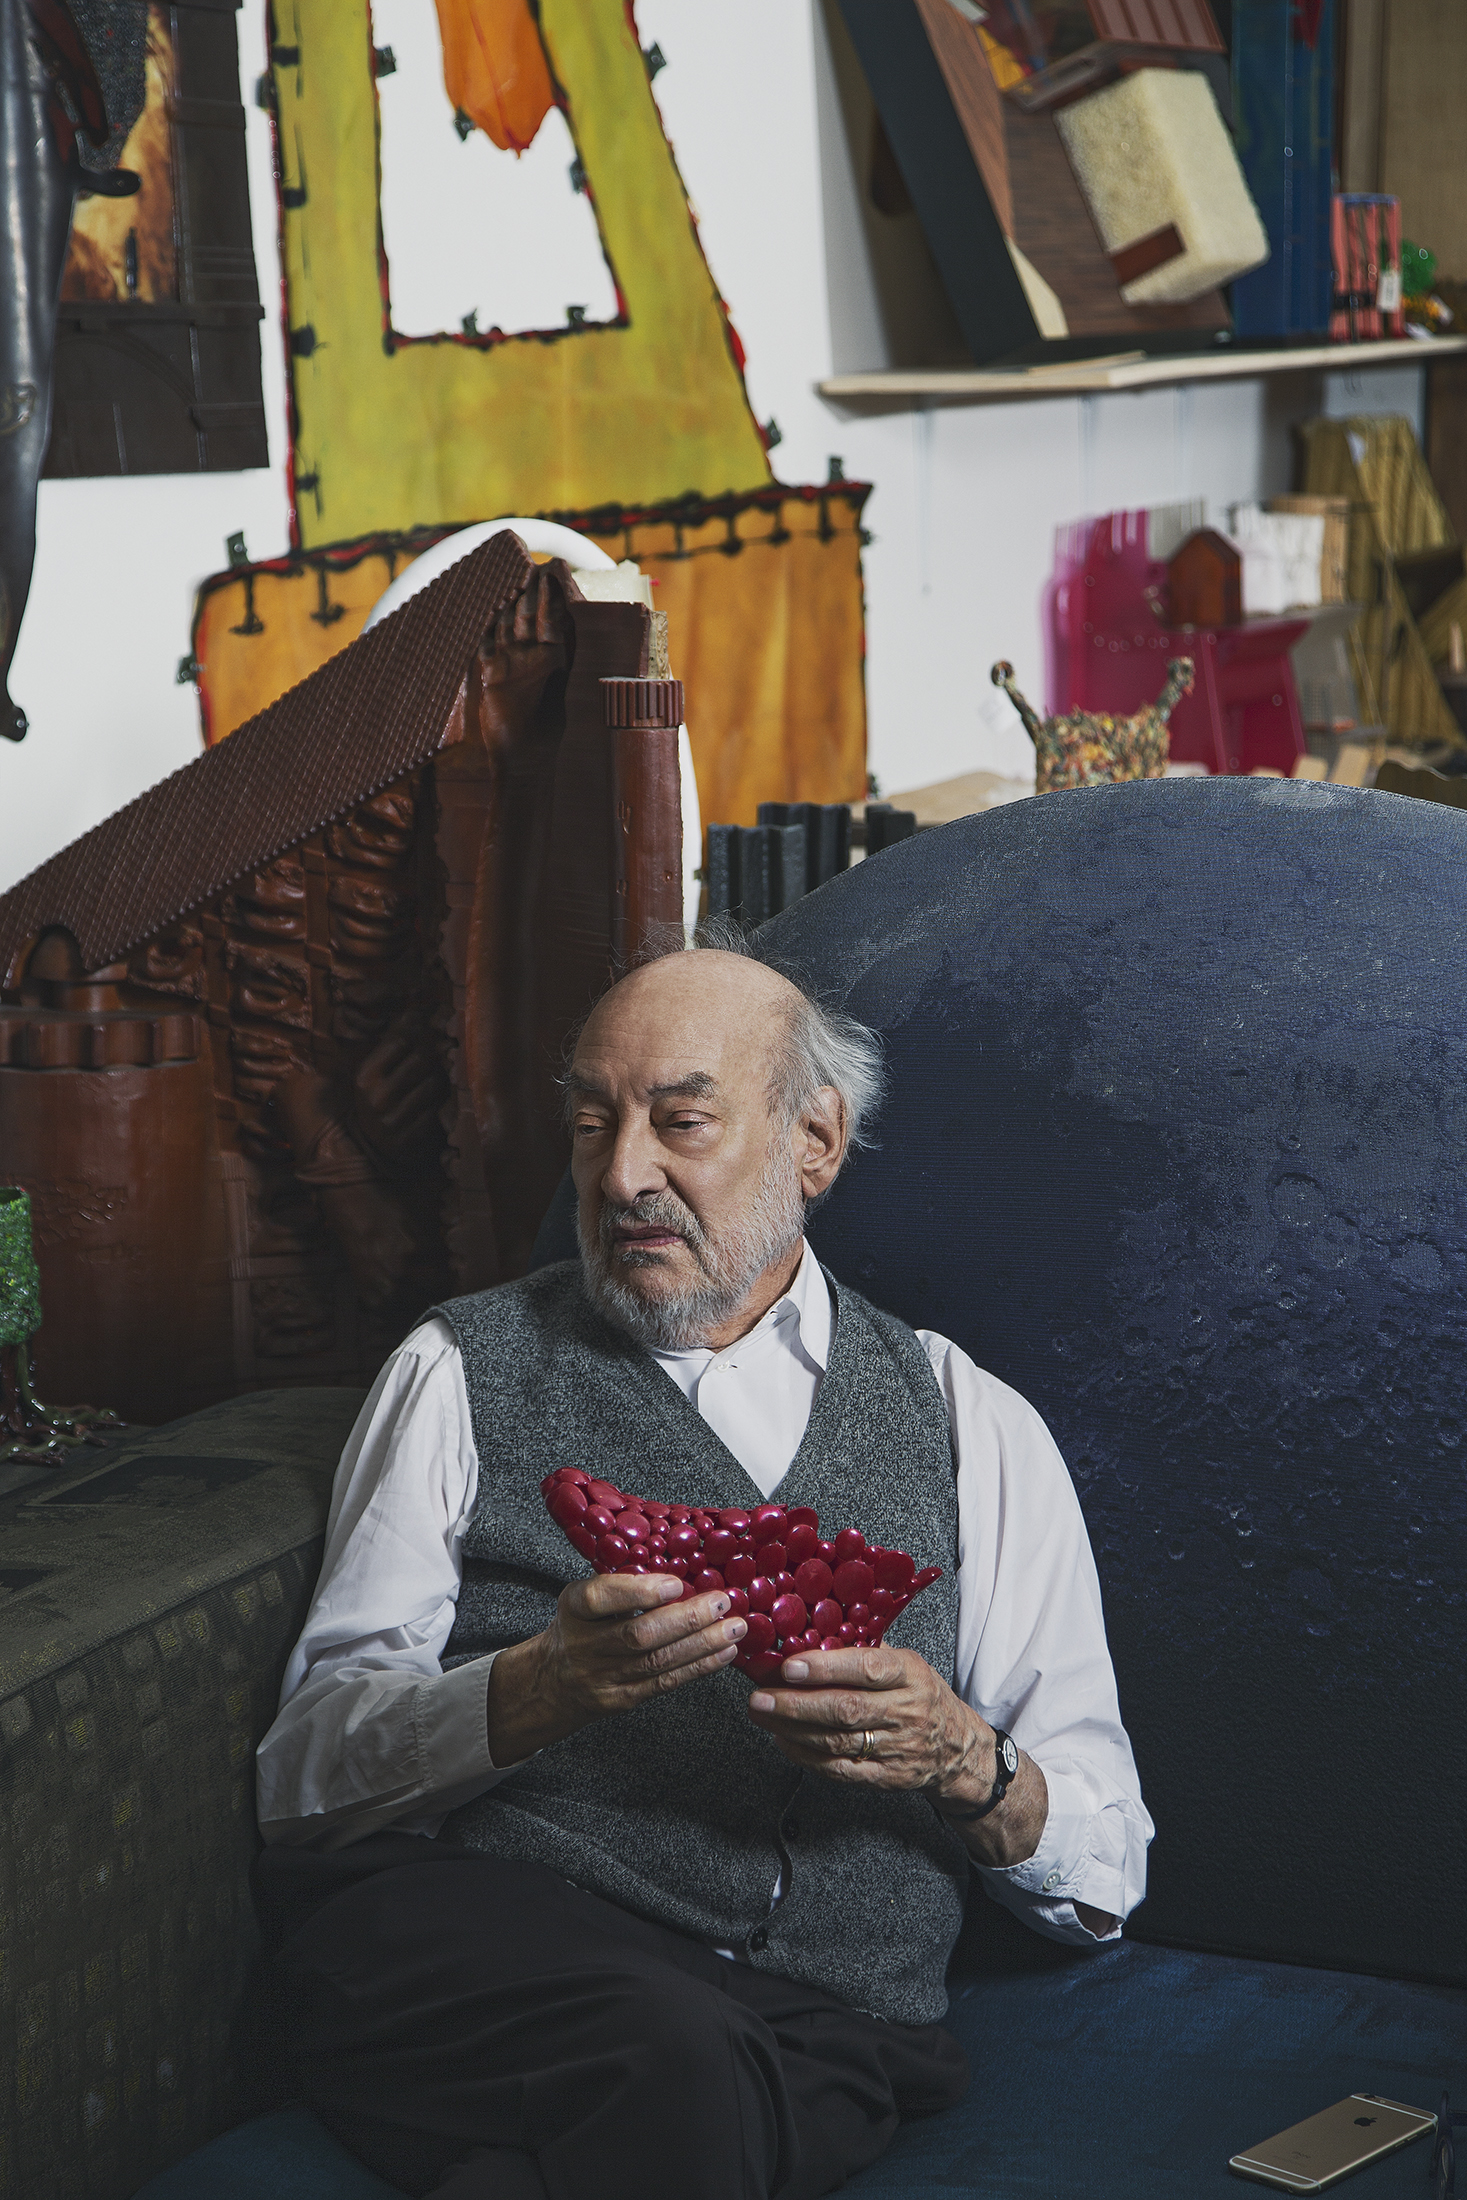 Gaetano Pesce holding a shoe he designed for the brand Melissa. (Photo: Ogata/Surface)